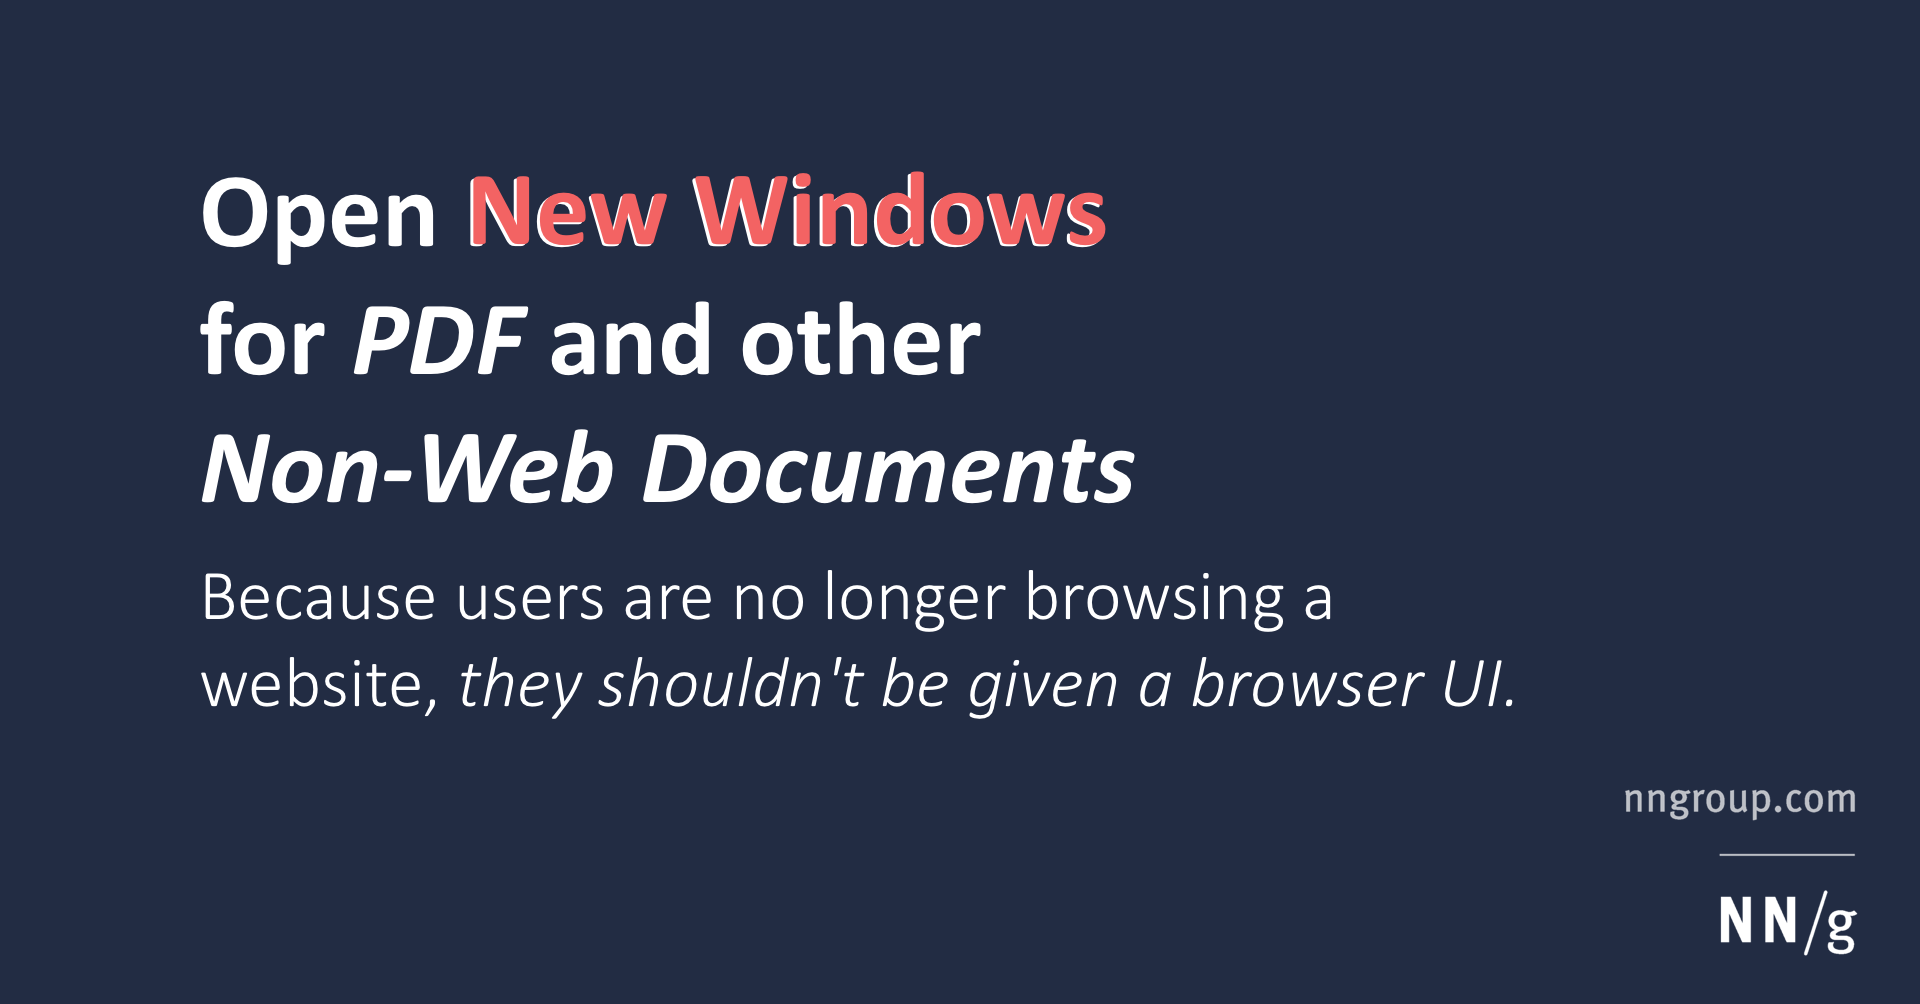 Open New Windows for PDF and other Non-Web Documents